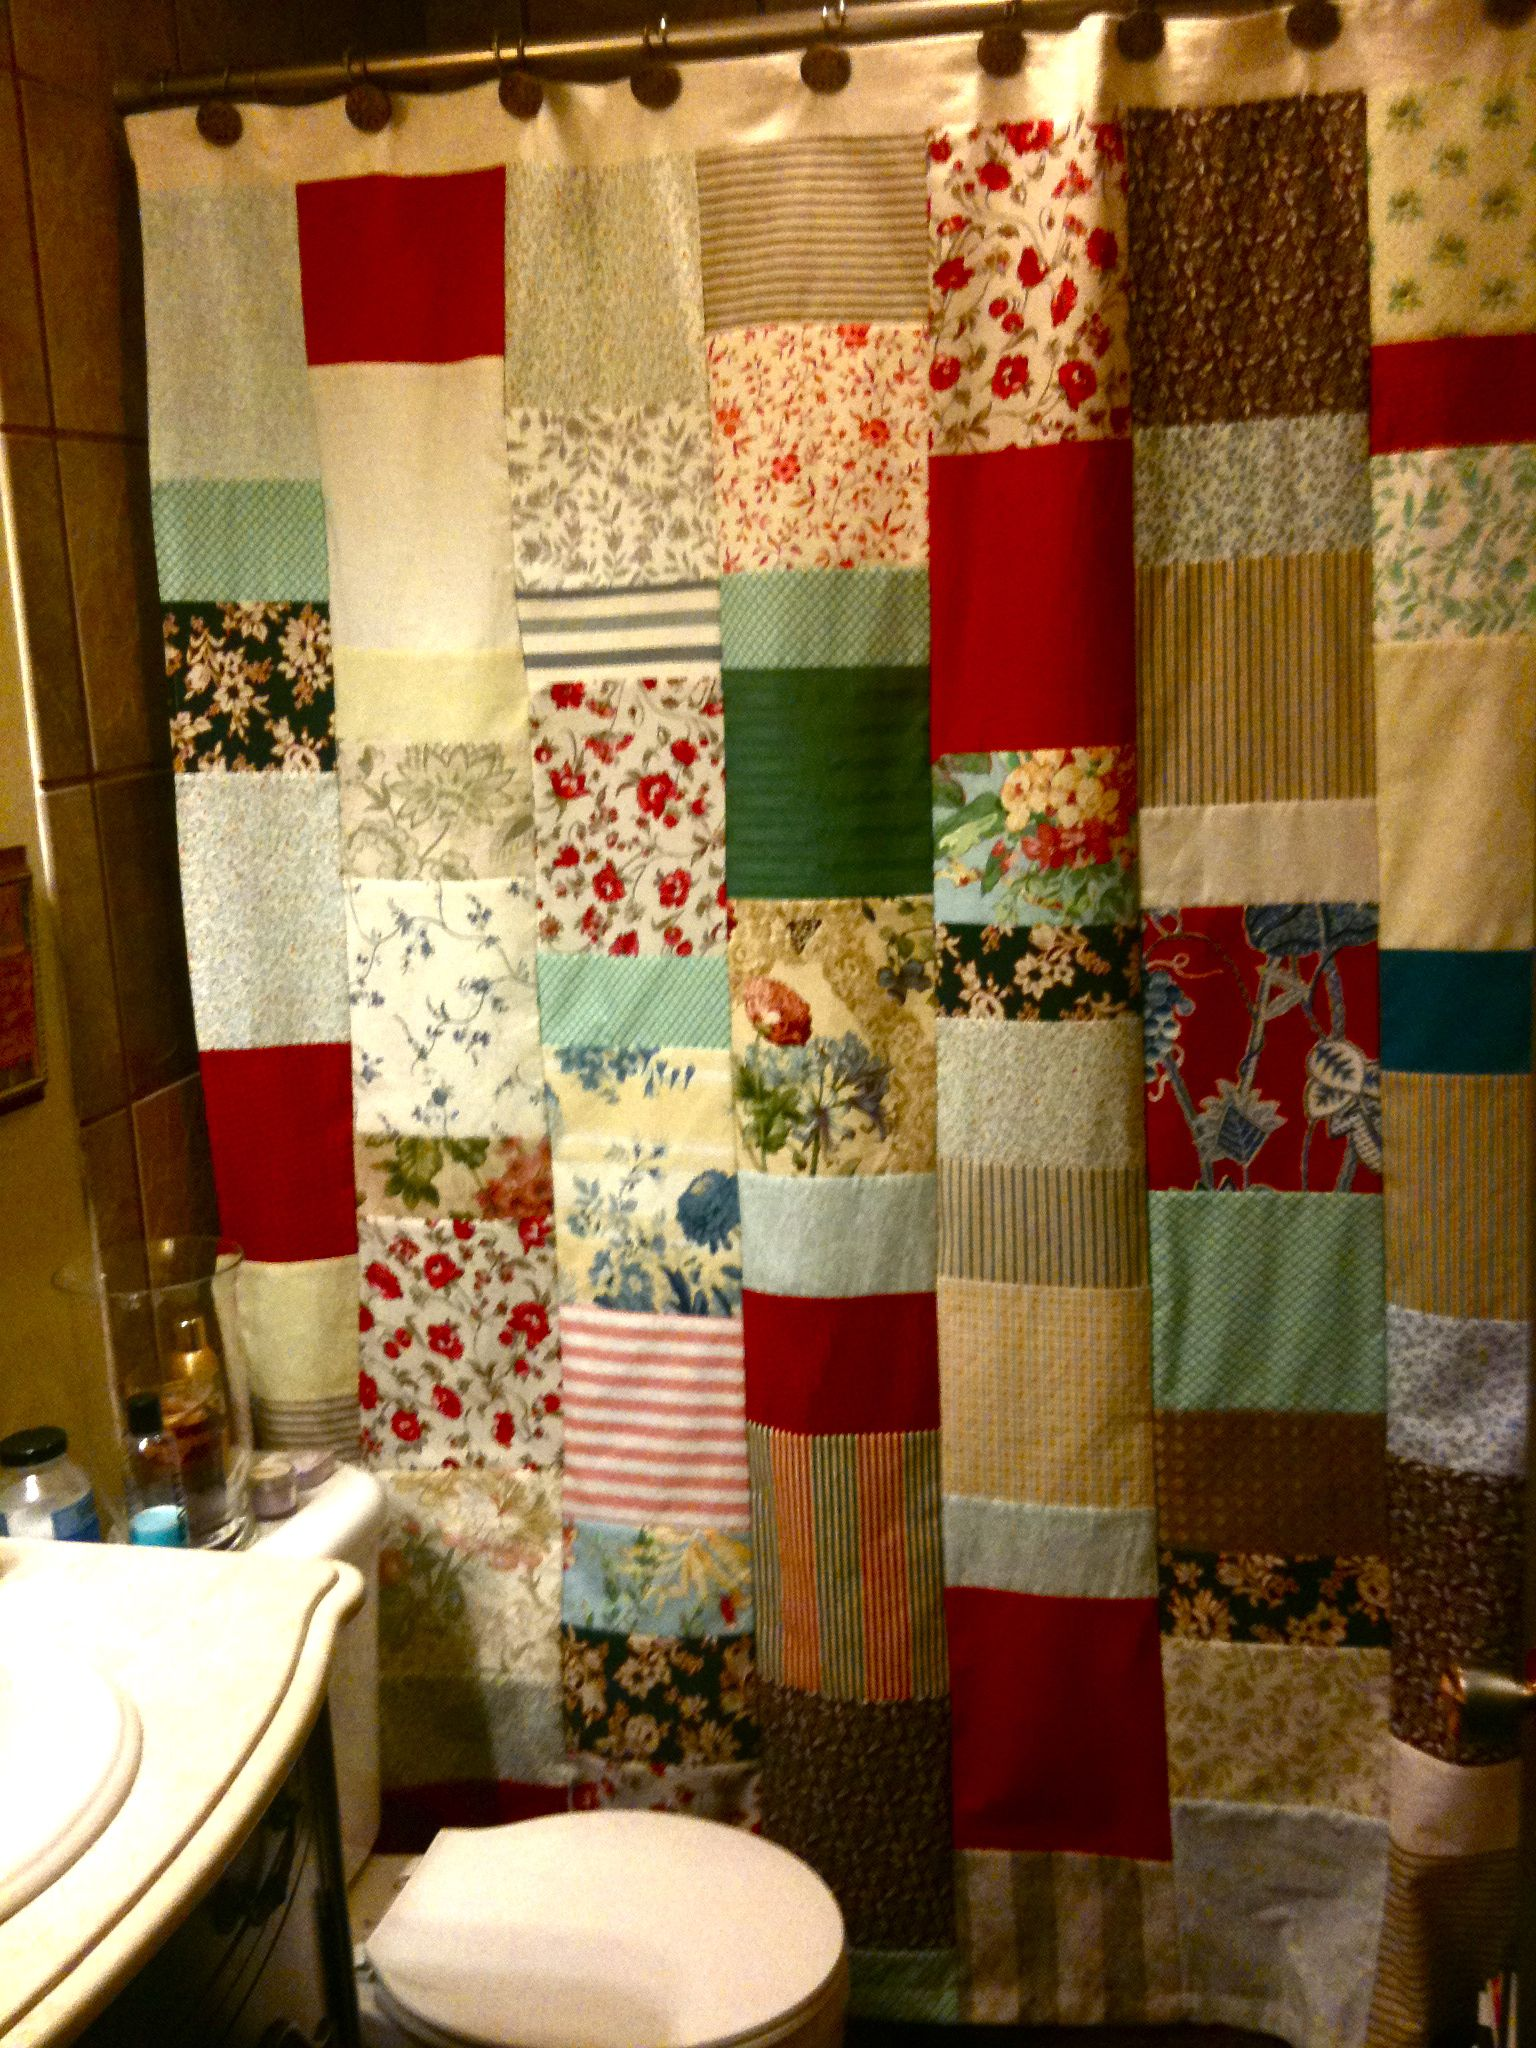 The Patchwork Shower Curtain I Sewed For Our Downstairs Bathroom